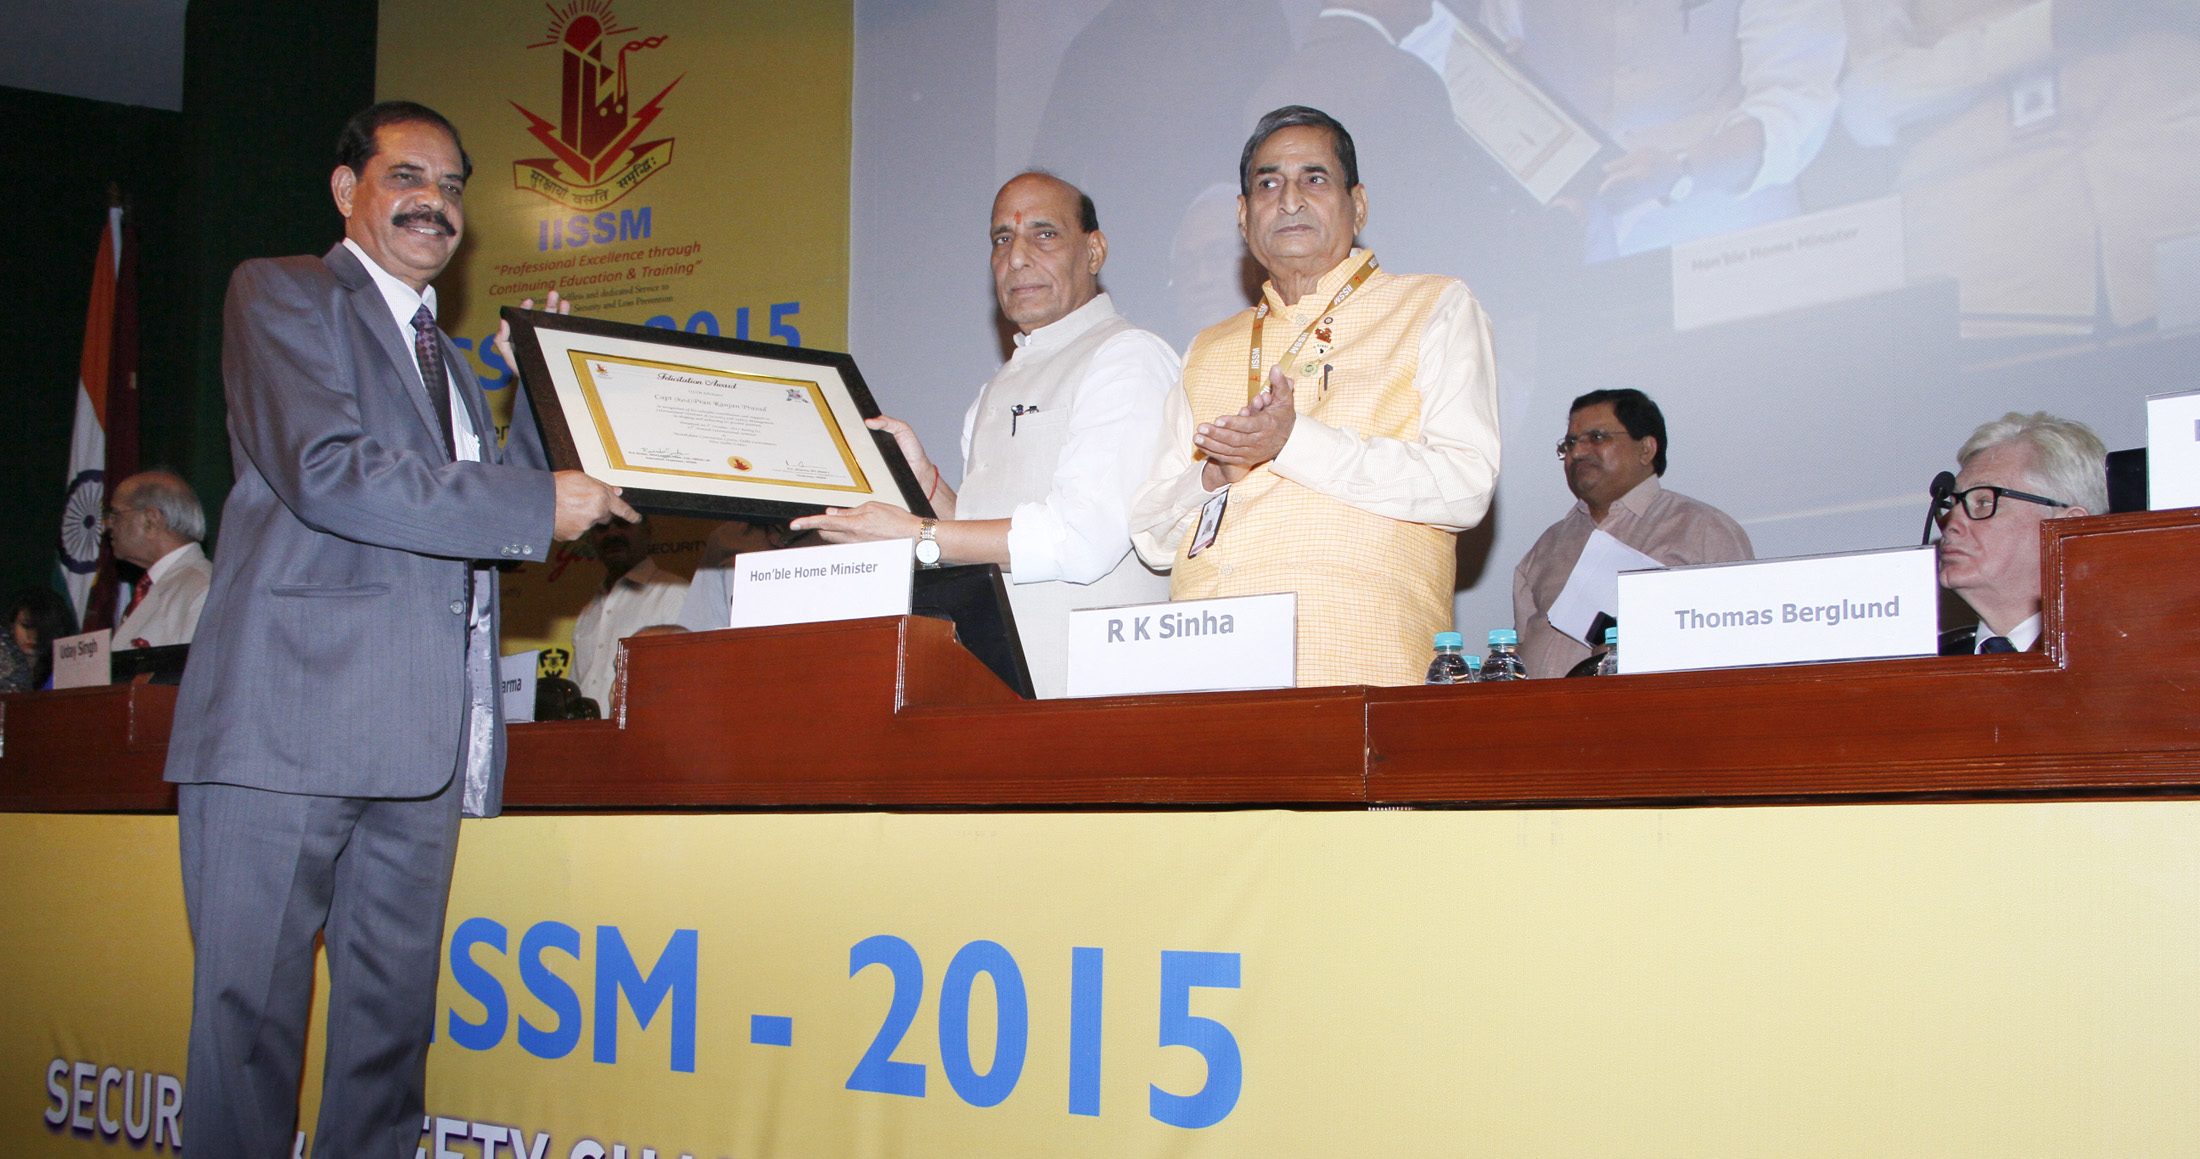 The Union Home Minister, Shri Rajnath Singh gave away the awards at the inauguration of the 25th Annual International Seminar of International Institute of Security and Safety Management (IISSM), in New Delhi on October 01, 2015.